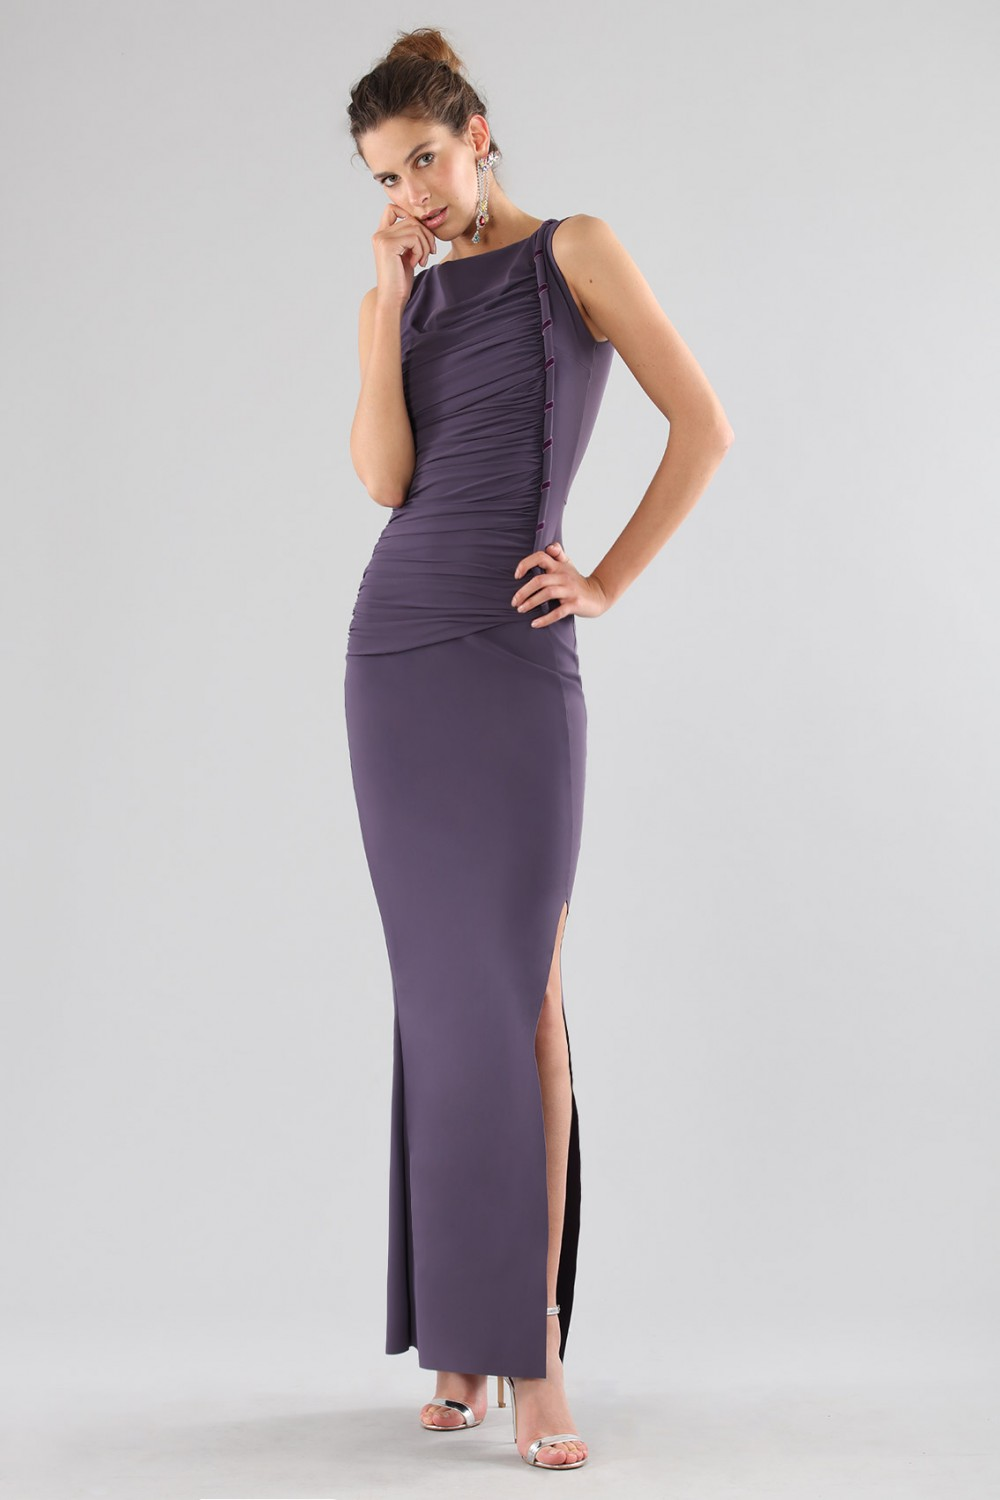 Plum dress with drapery